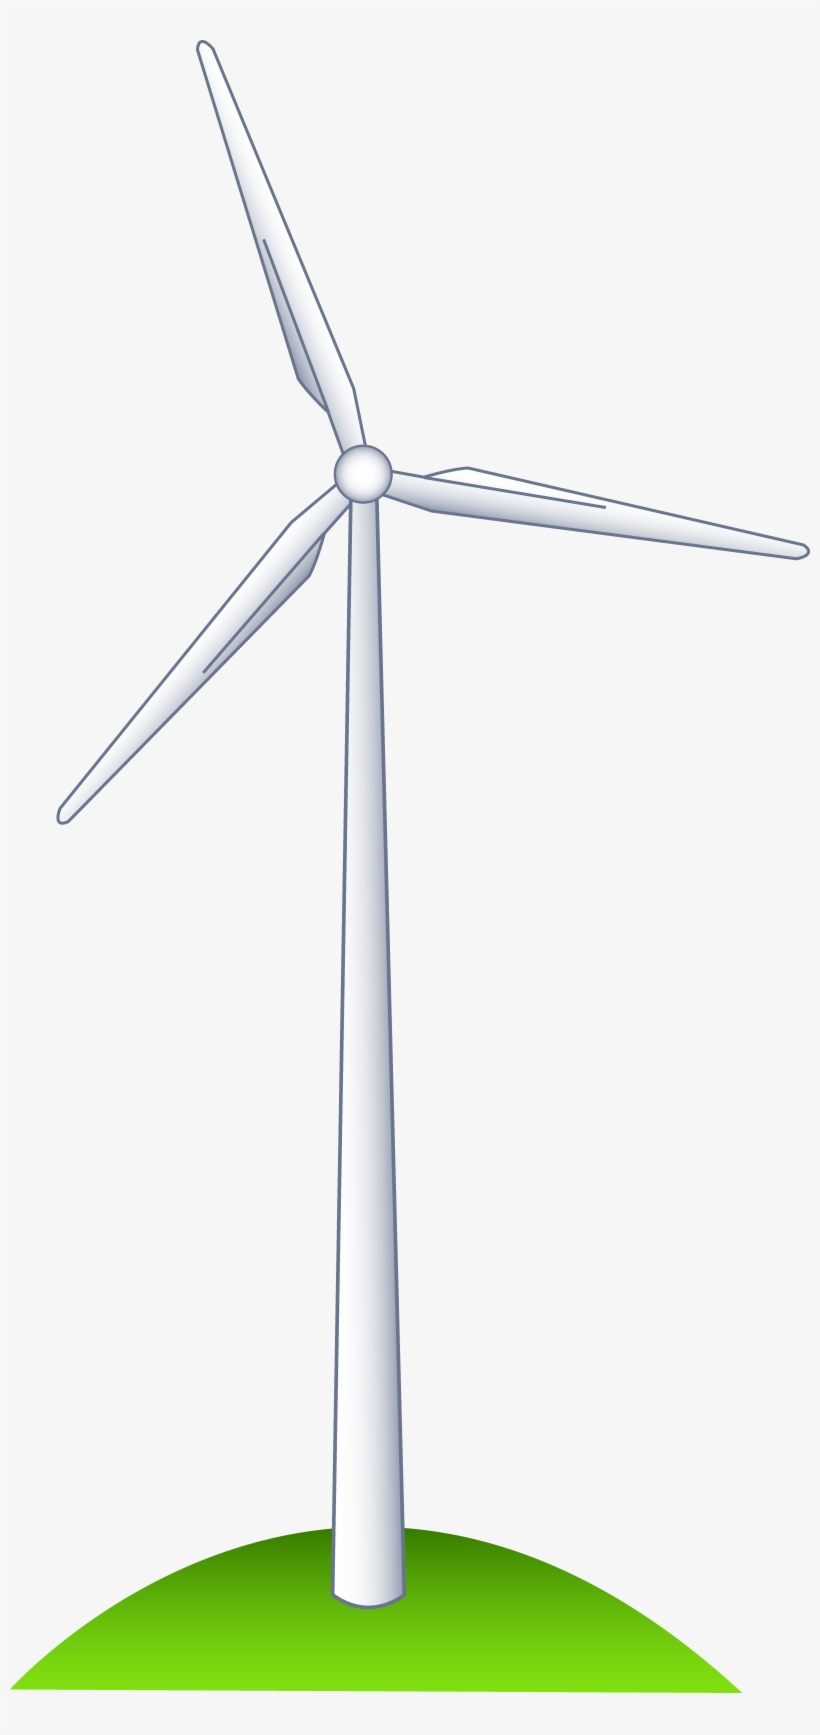 28 Collection Of Free Clipart Wind Turbine.